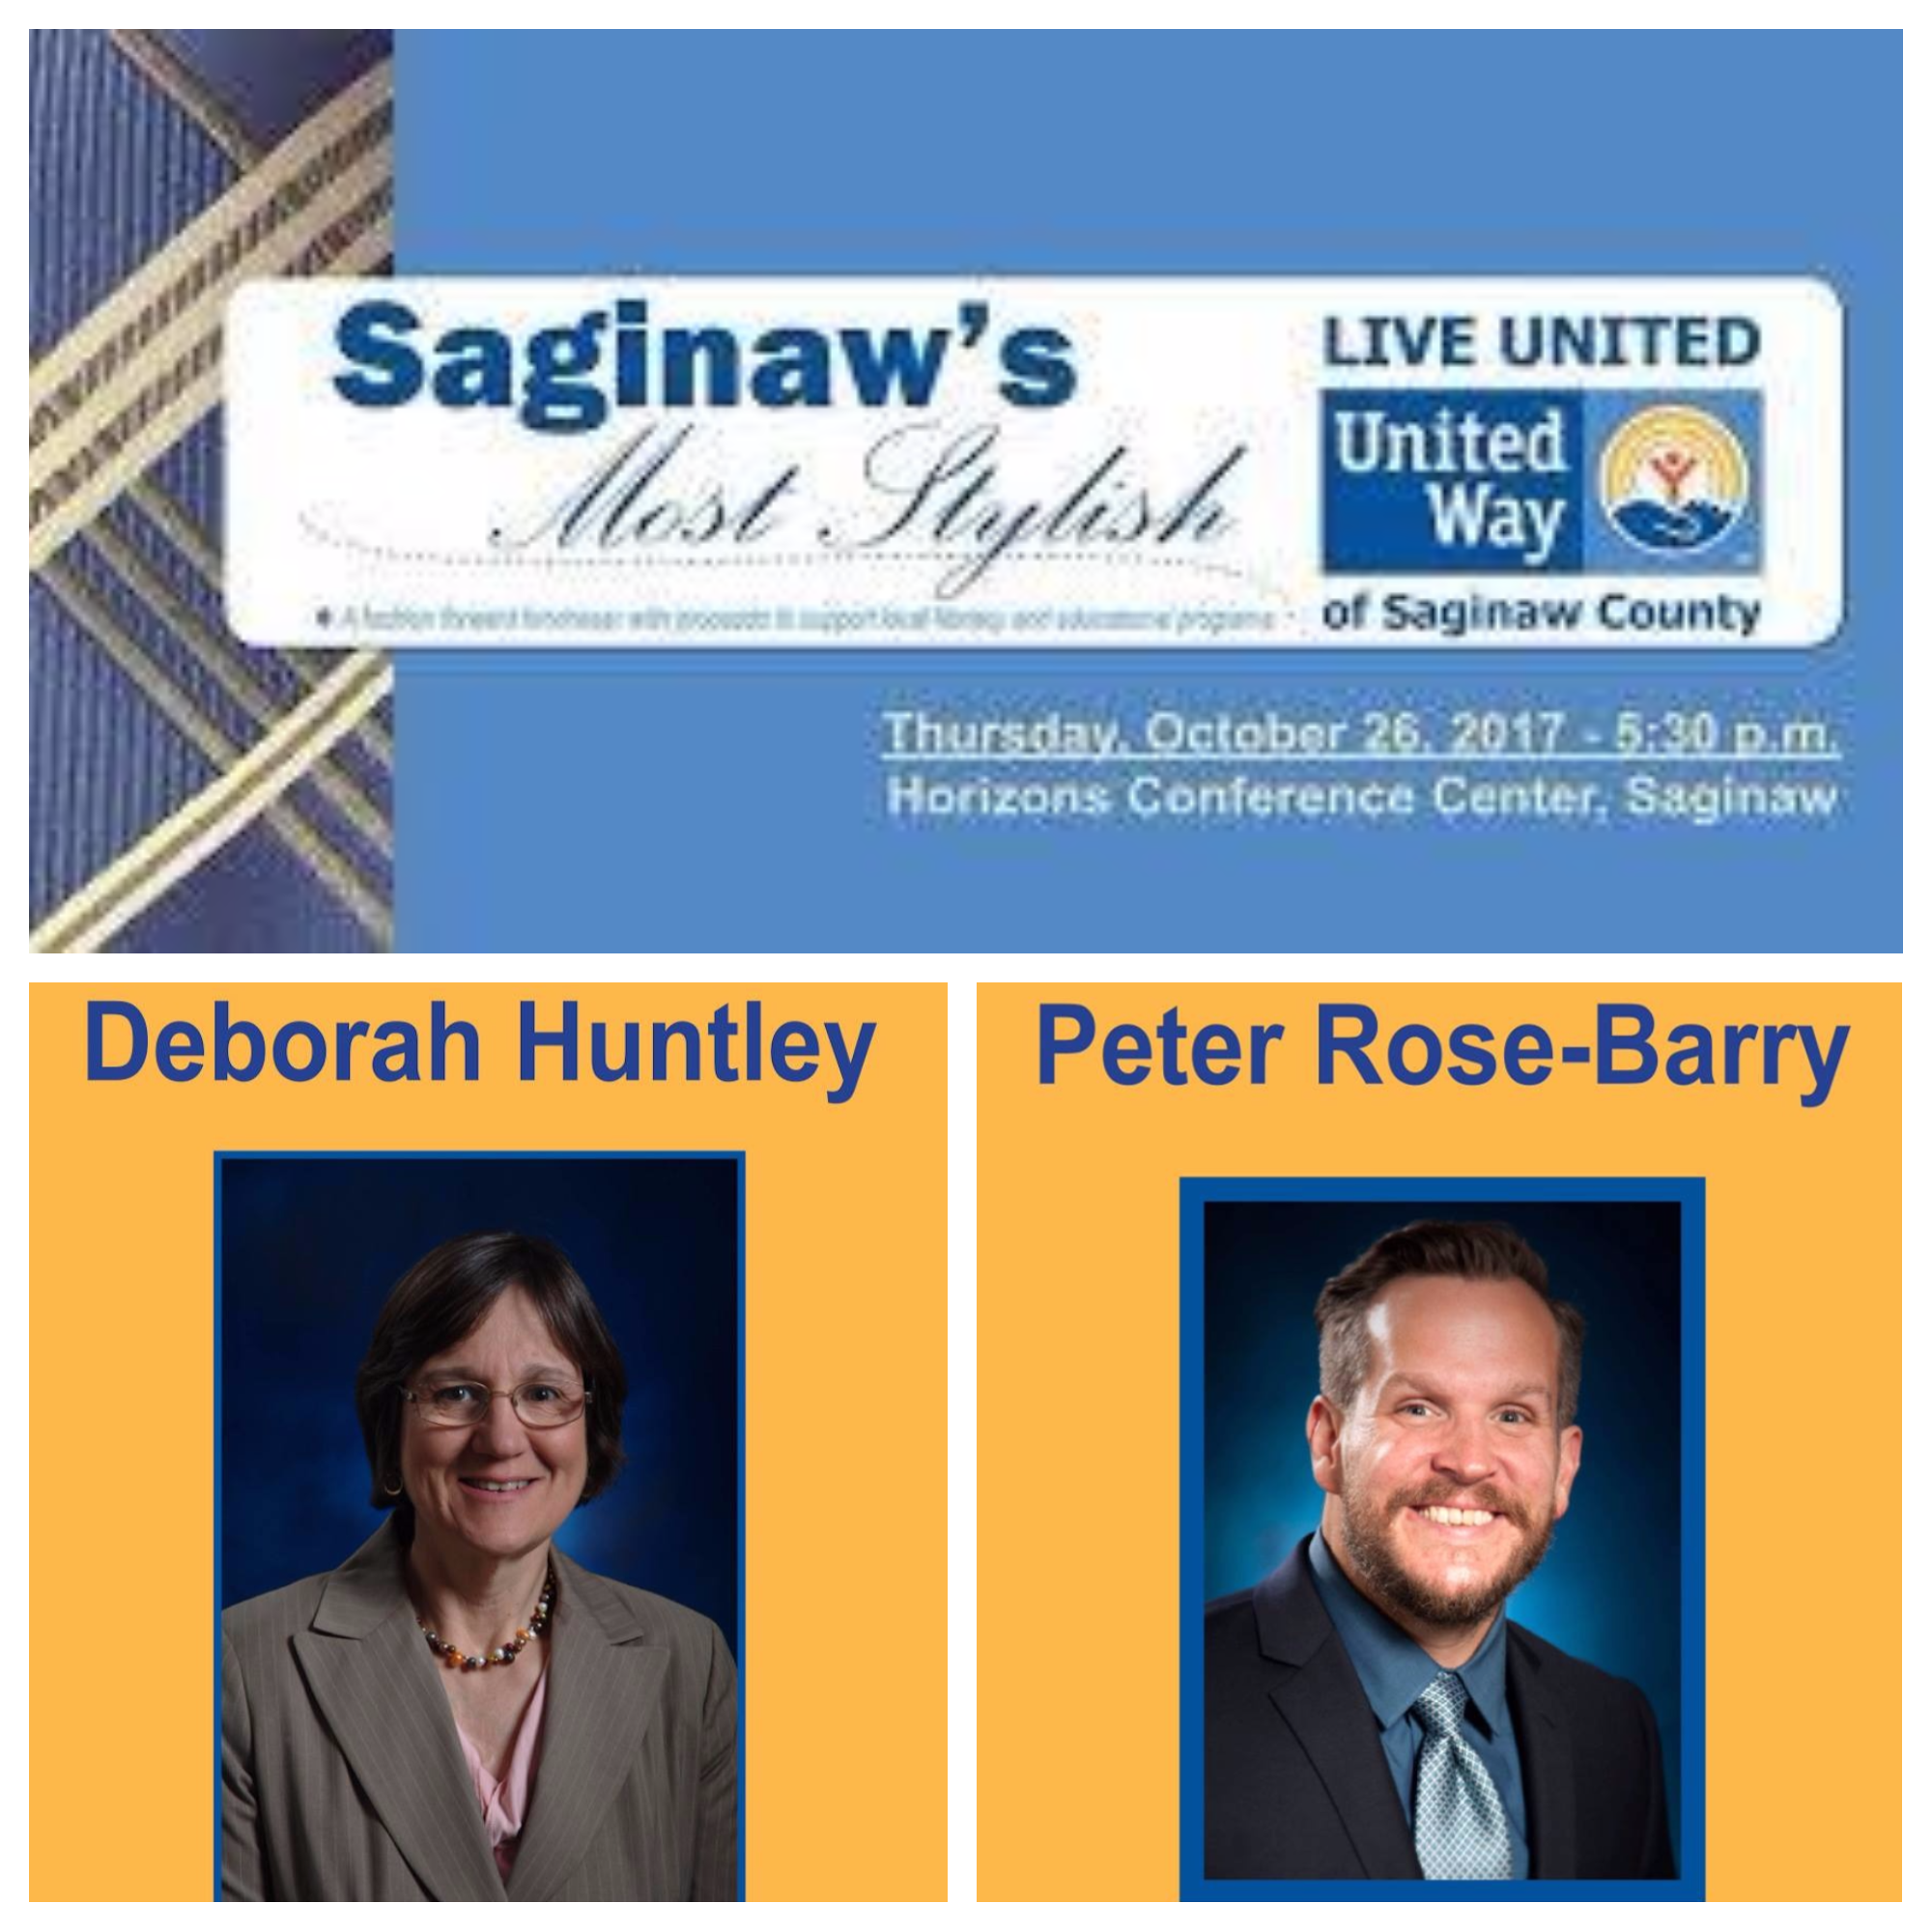 Provost Deborah Huntley and Peter Rose-Berry are participating in the Saginaw's Most Stylish fundraiser to raise money for literacy programs.